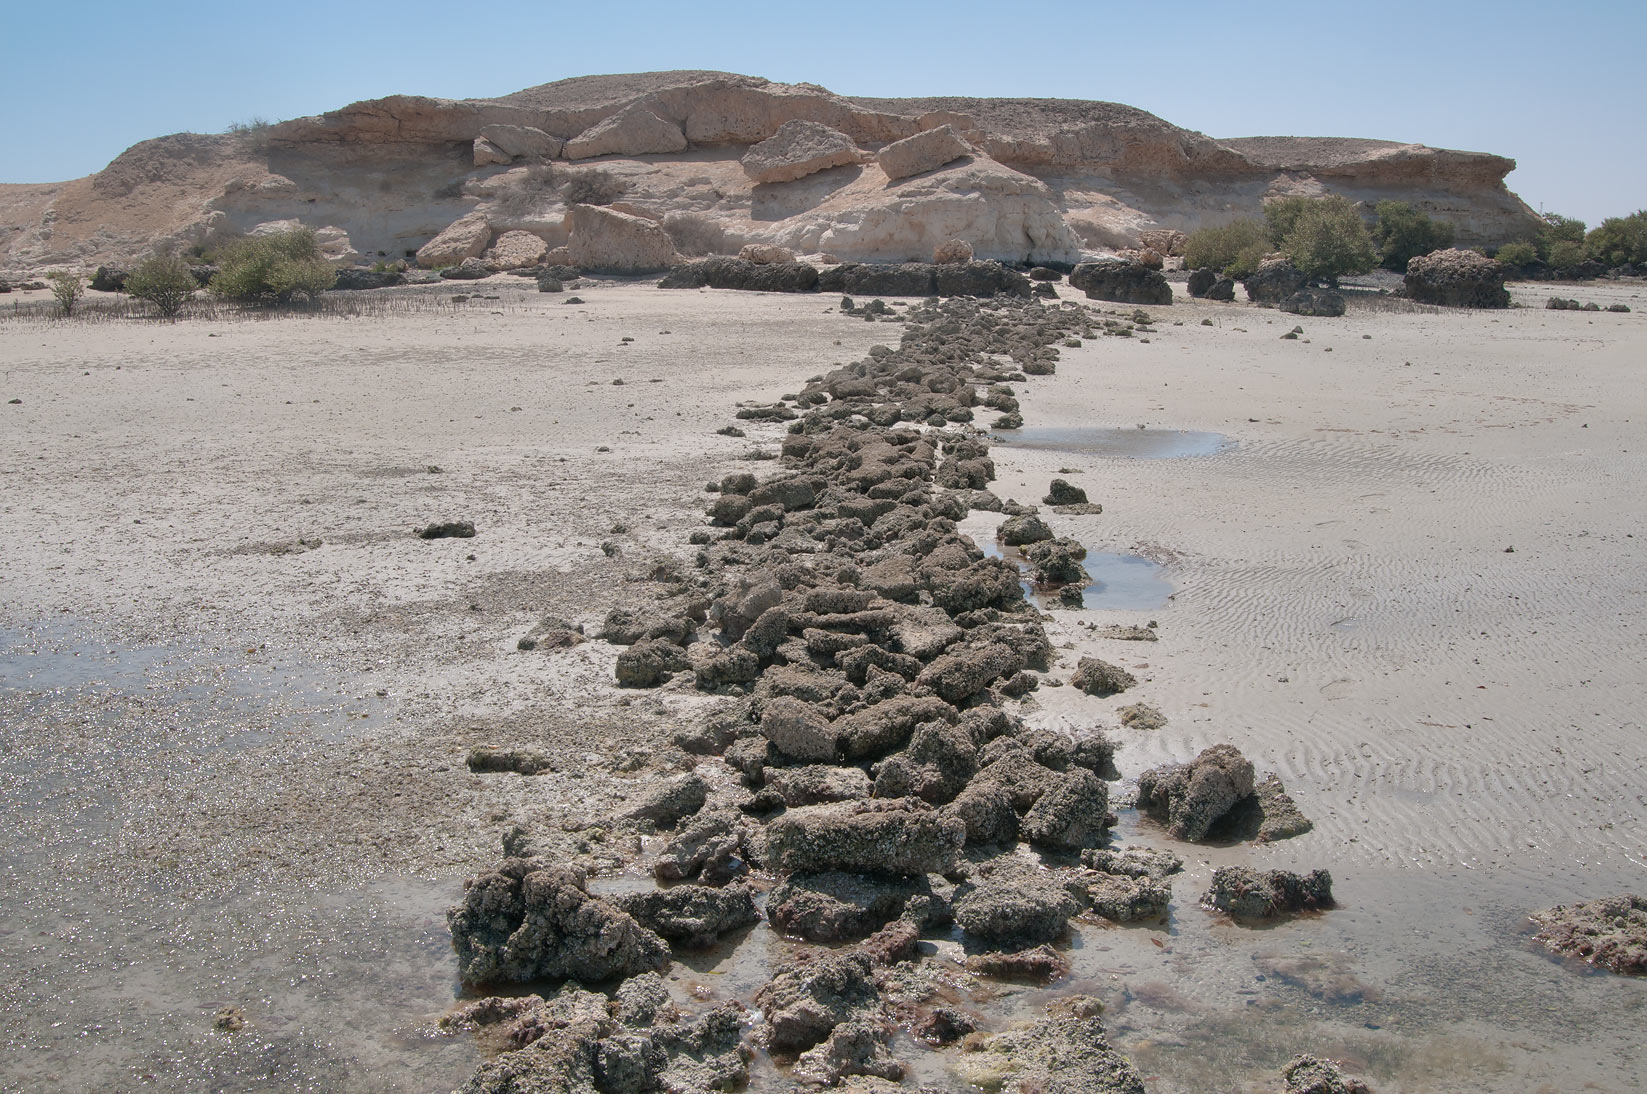 Line of beachrock stones remained from ancient...Jazirat Bin Ghanim). Al Khor, Qatar